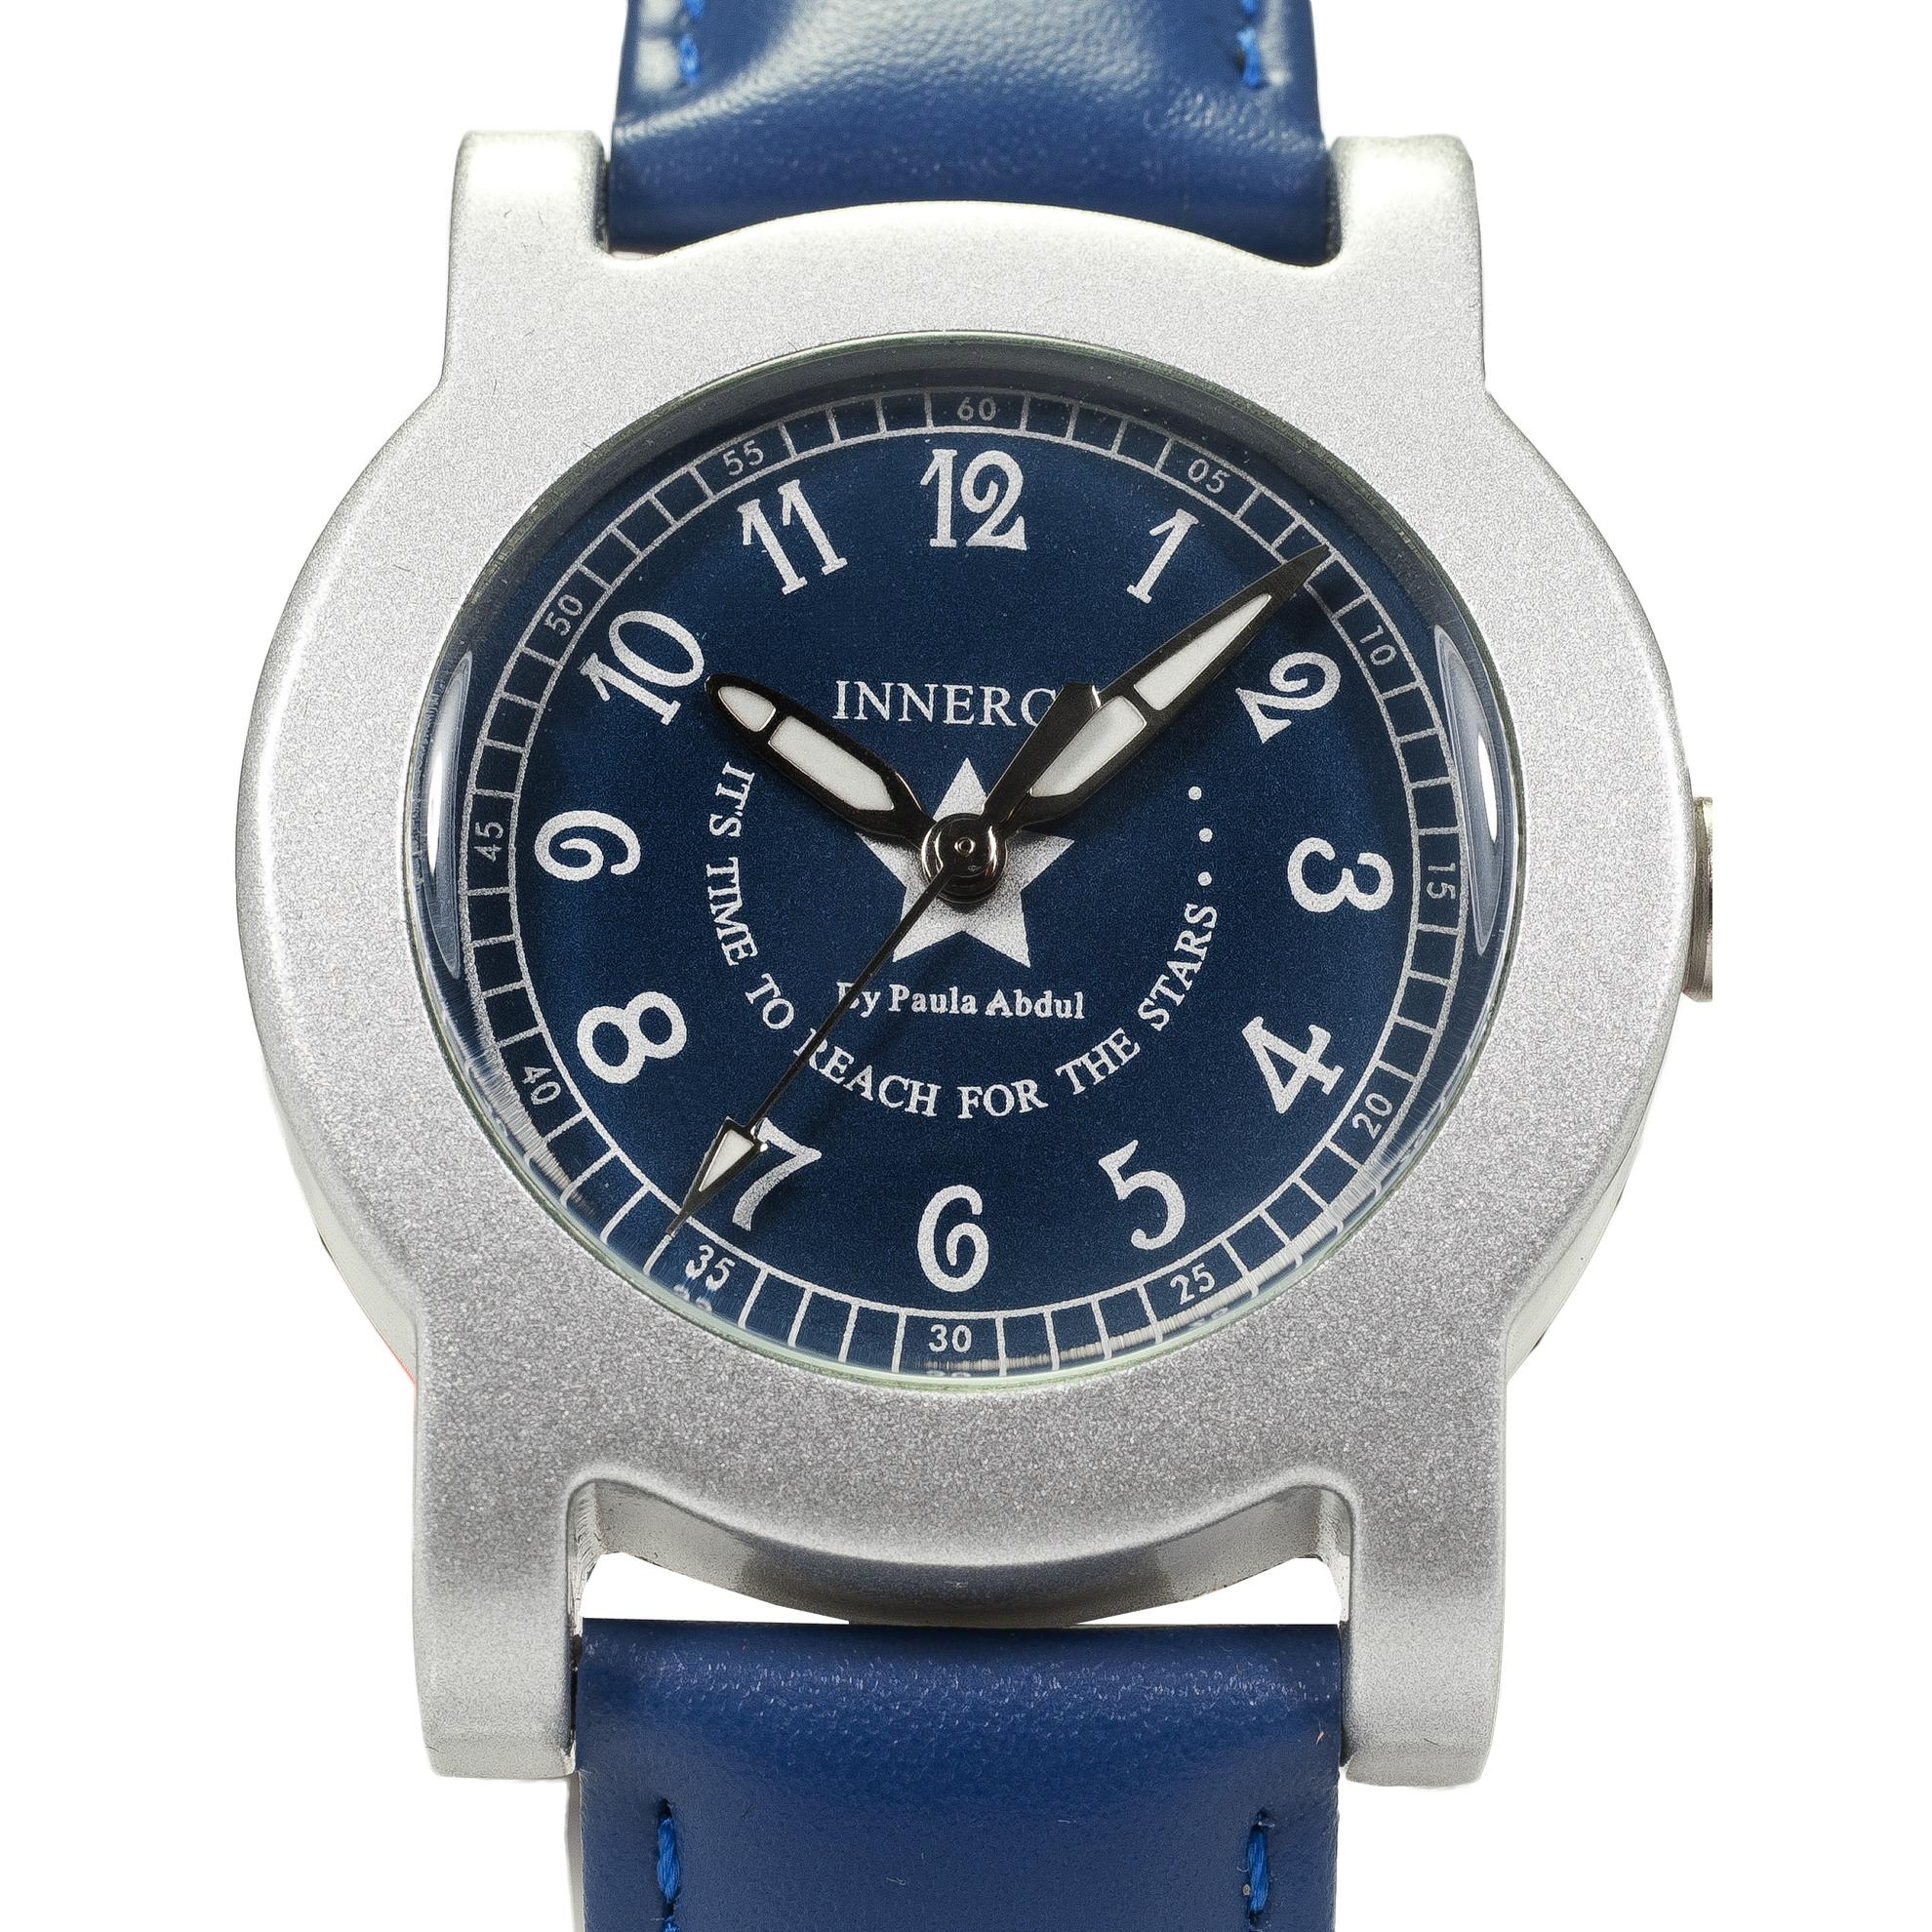 Innergy Swiss Made Timepiece Blue Leather Strap